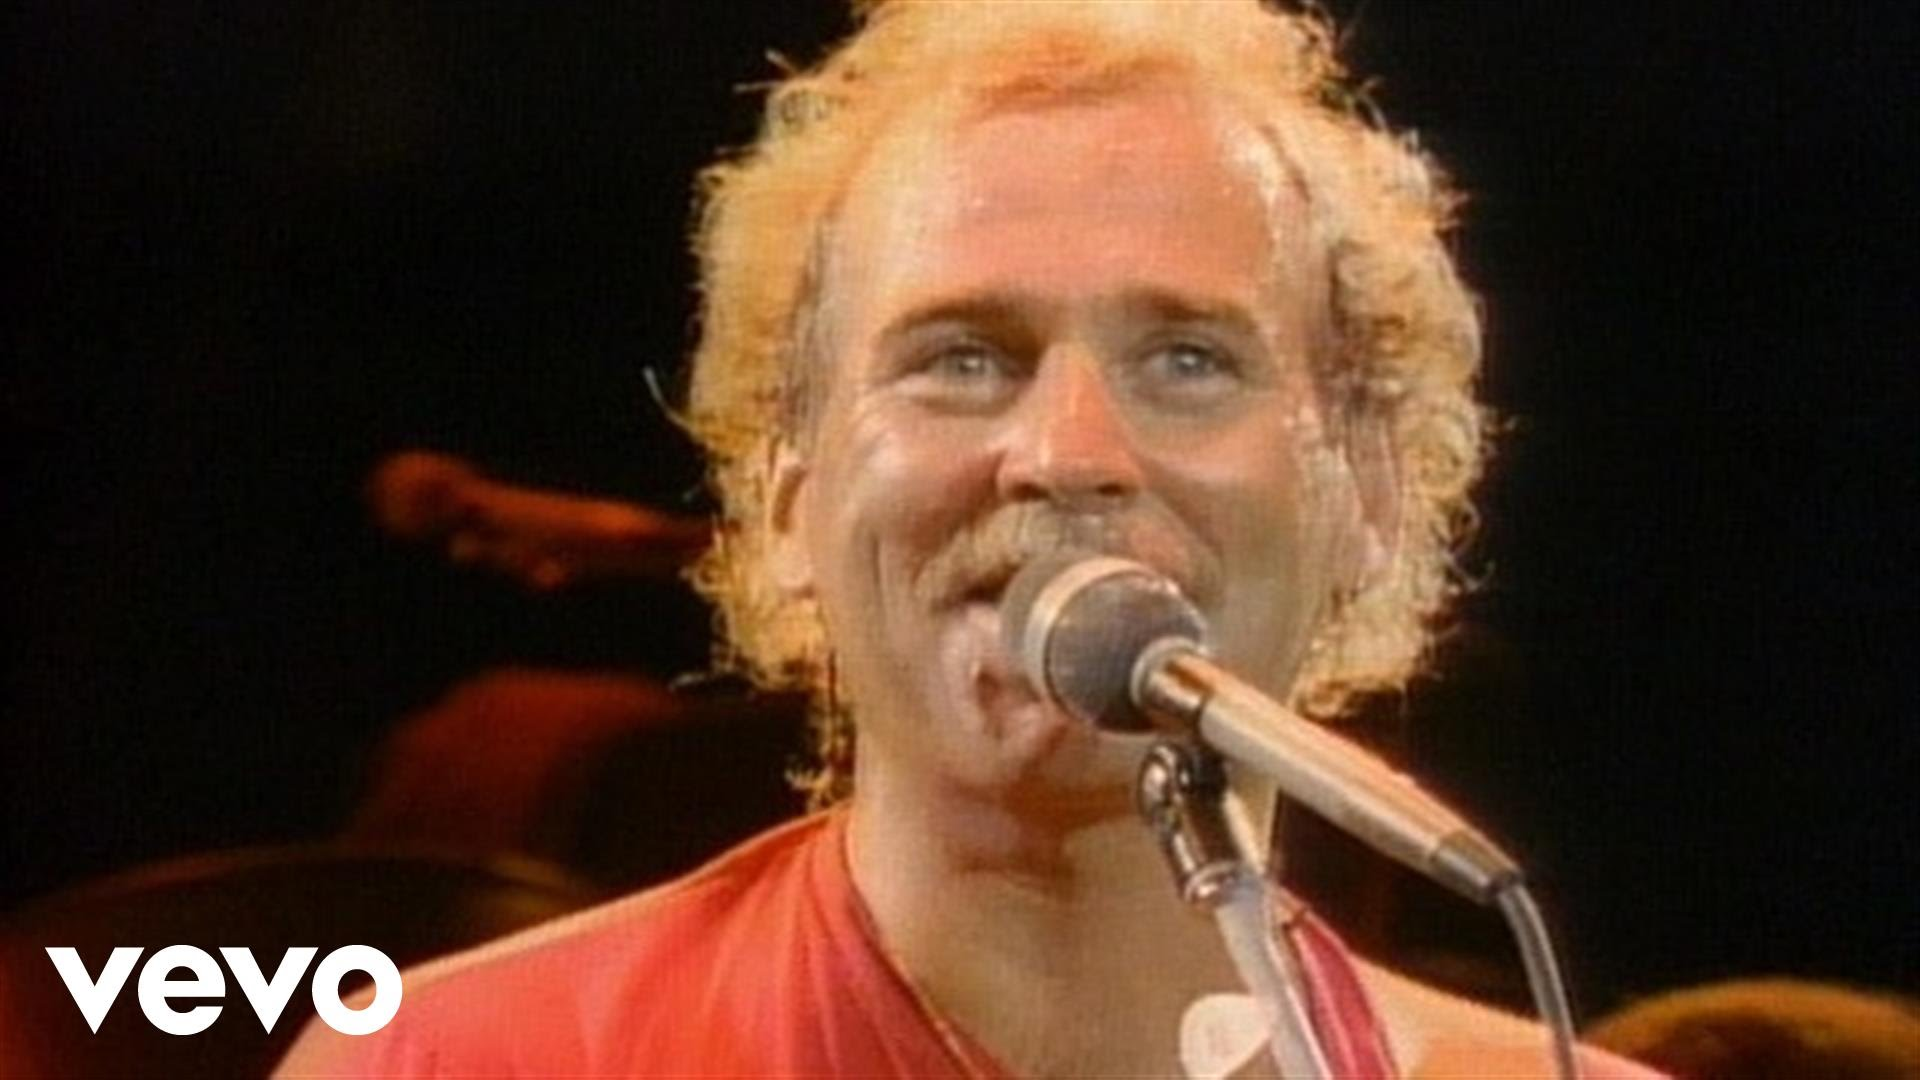 5 things you didn't know about Jimmy Buffett